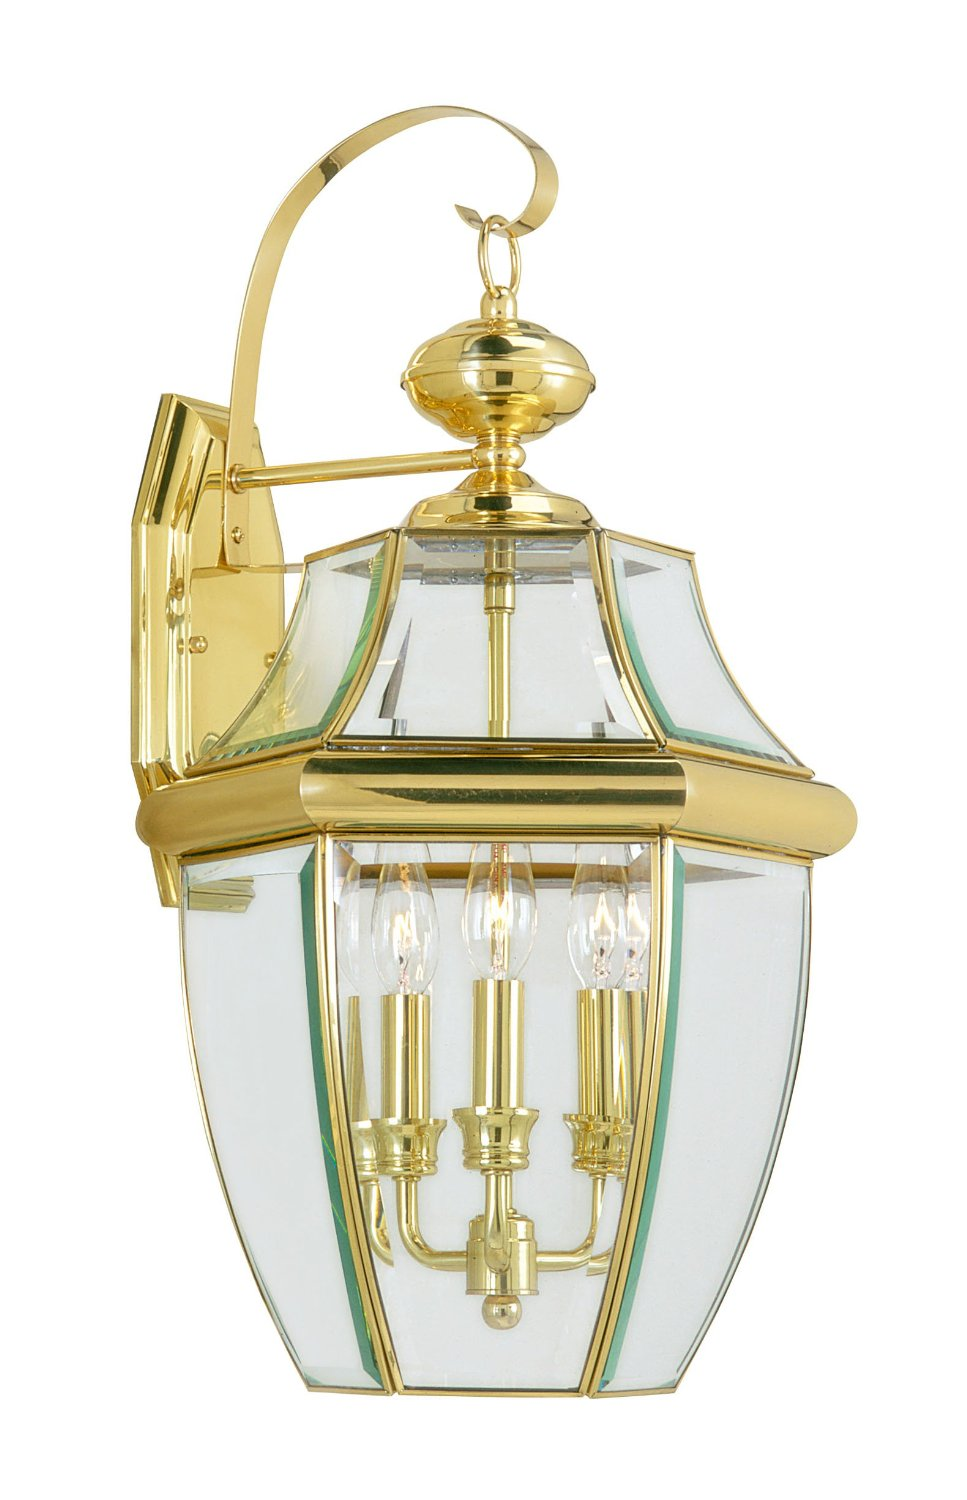 elegant Livex Lighting 2251 02 Monterey 2 Light Outdoor Polished Brass for home lighting ideas